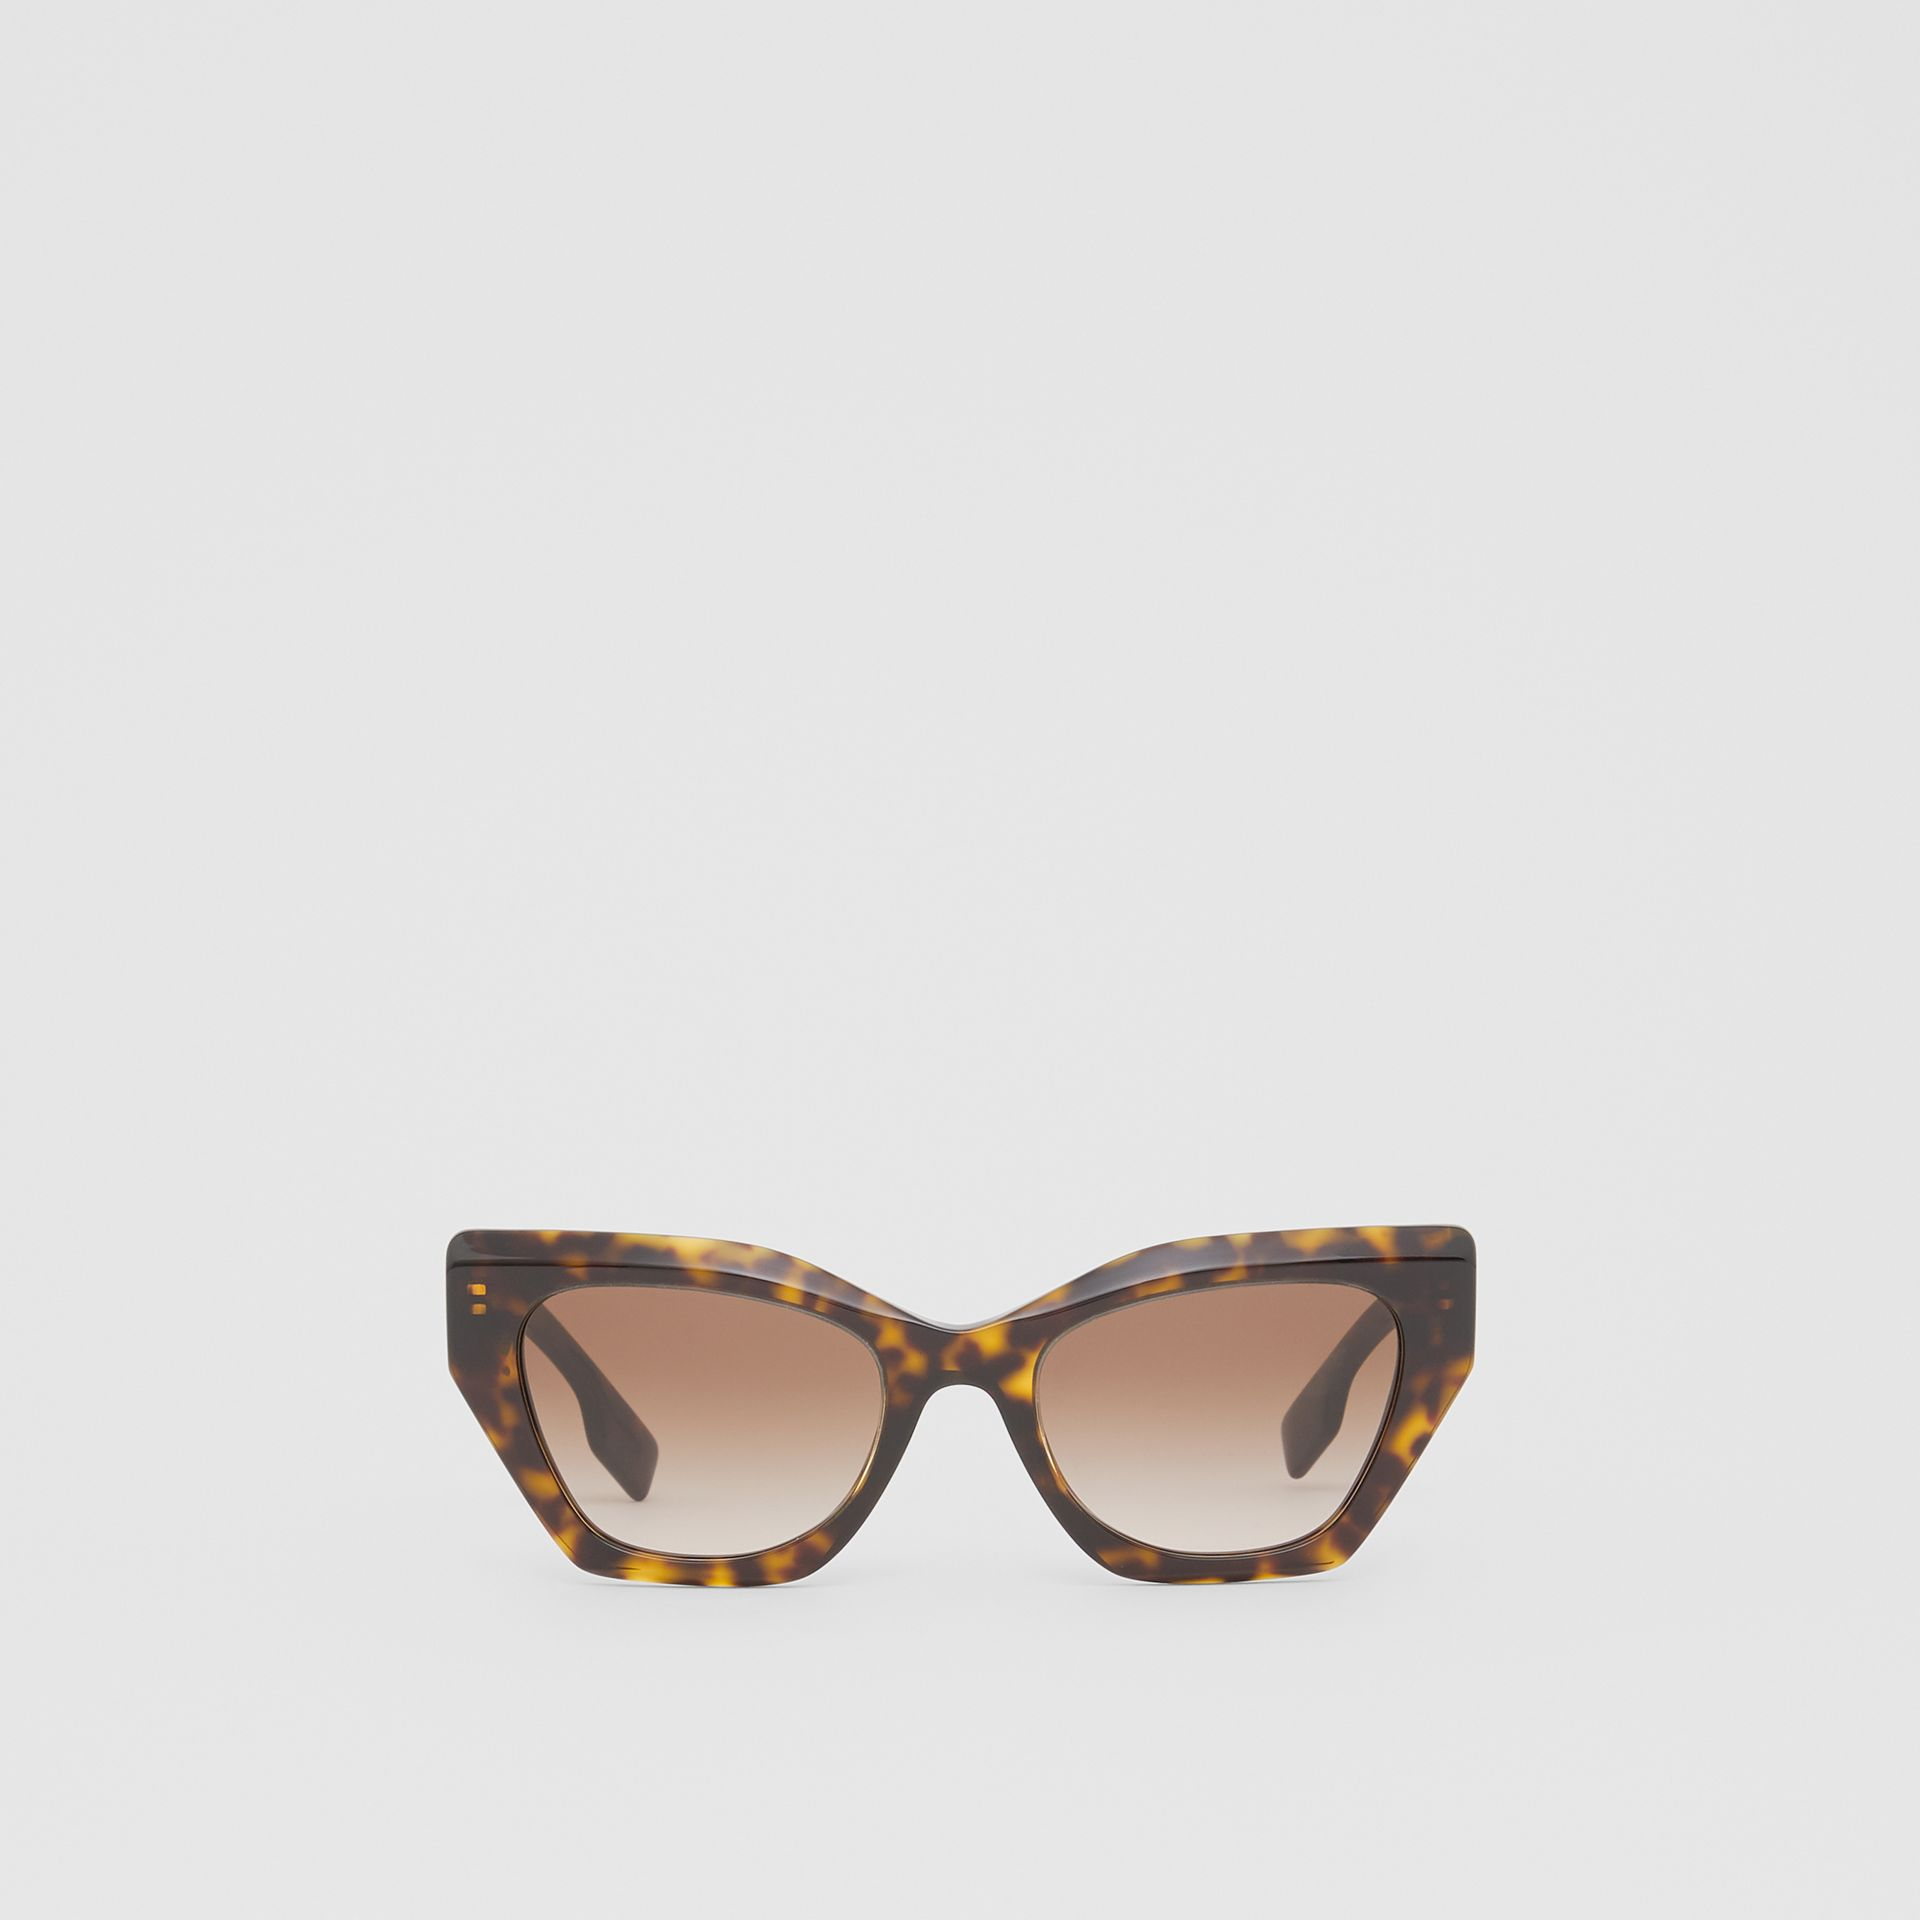 Butterfly Frame Sunglasses in Tortoiseshell - Women | Burberry - gallery image 0